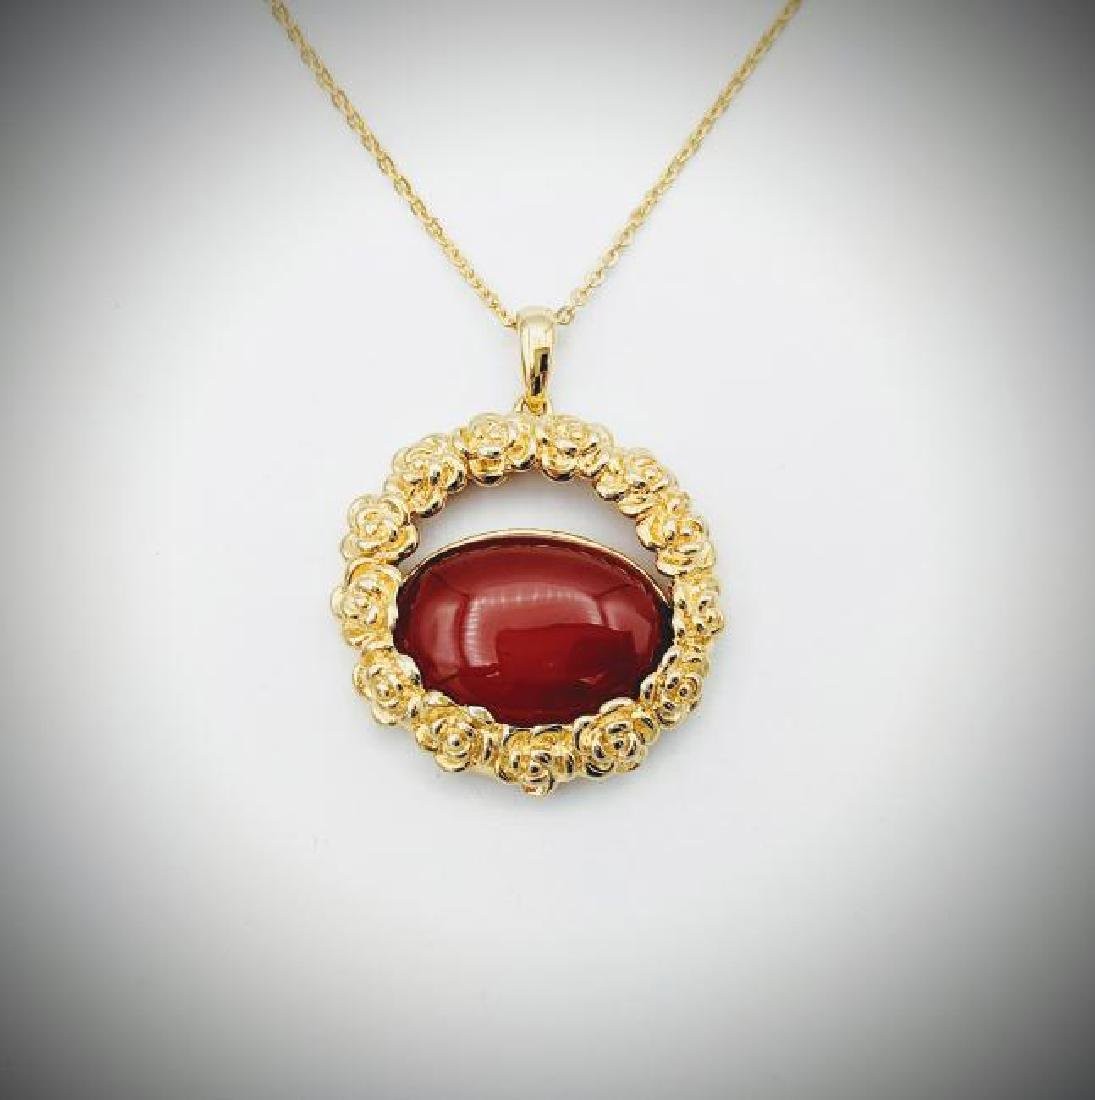 Gold Plated SS Necklace w Carnelian Pendant